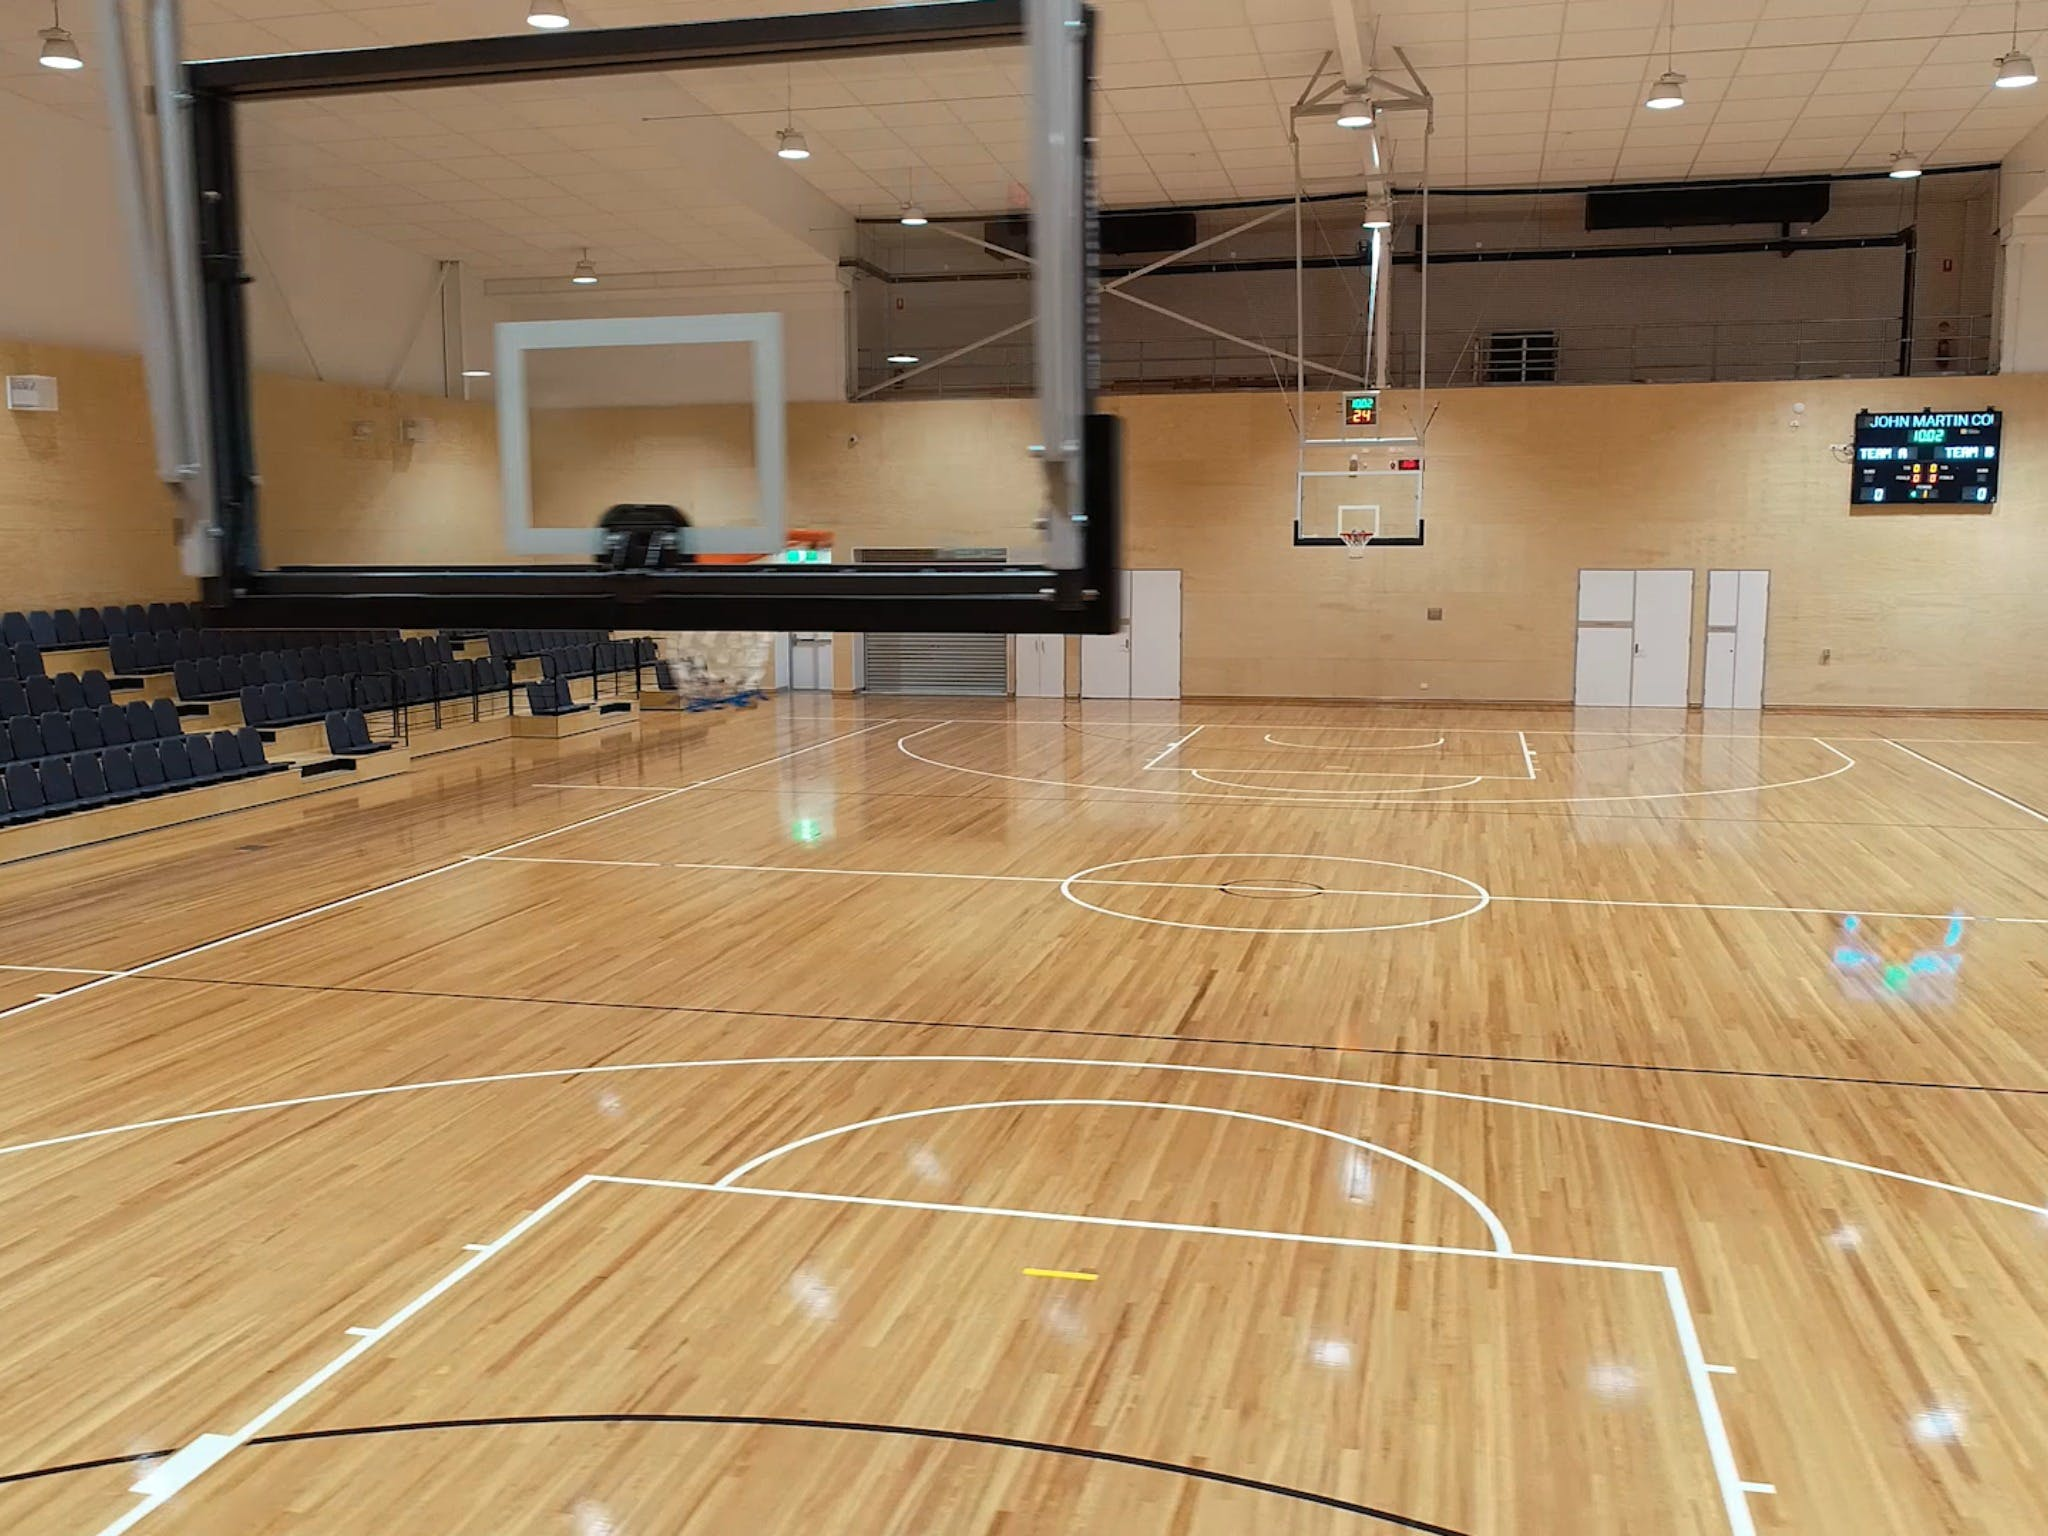 Shoalhaven Indoor Sports Centre - Accommodation Search